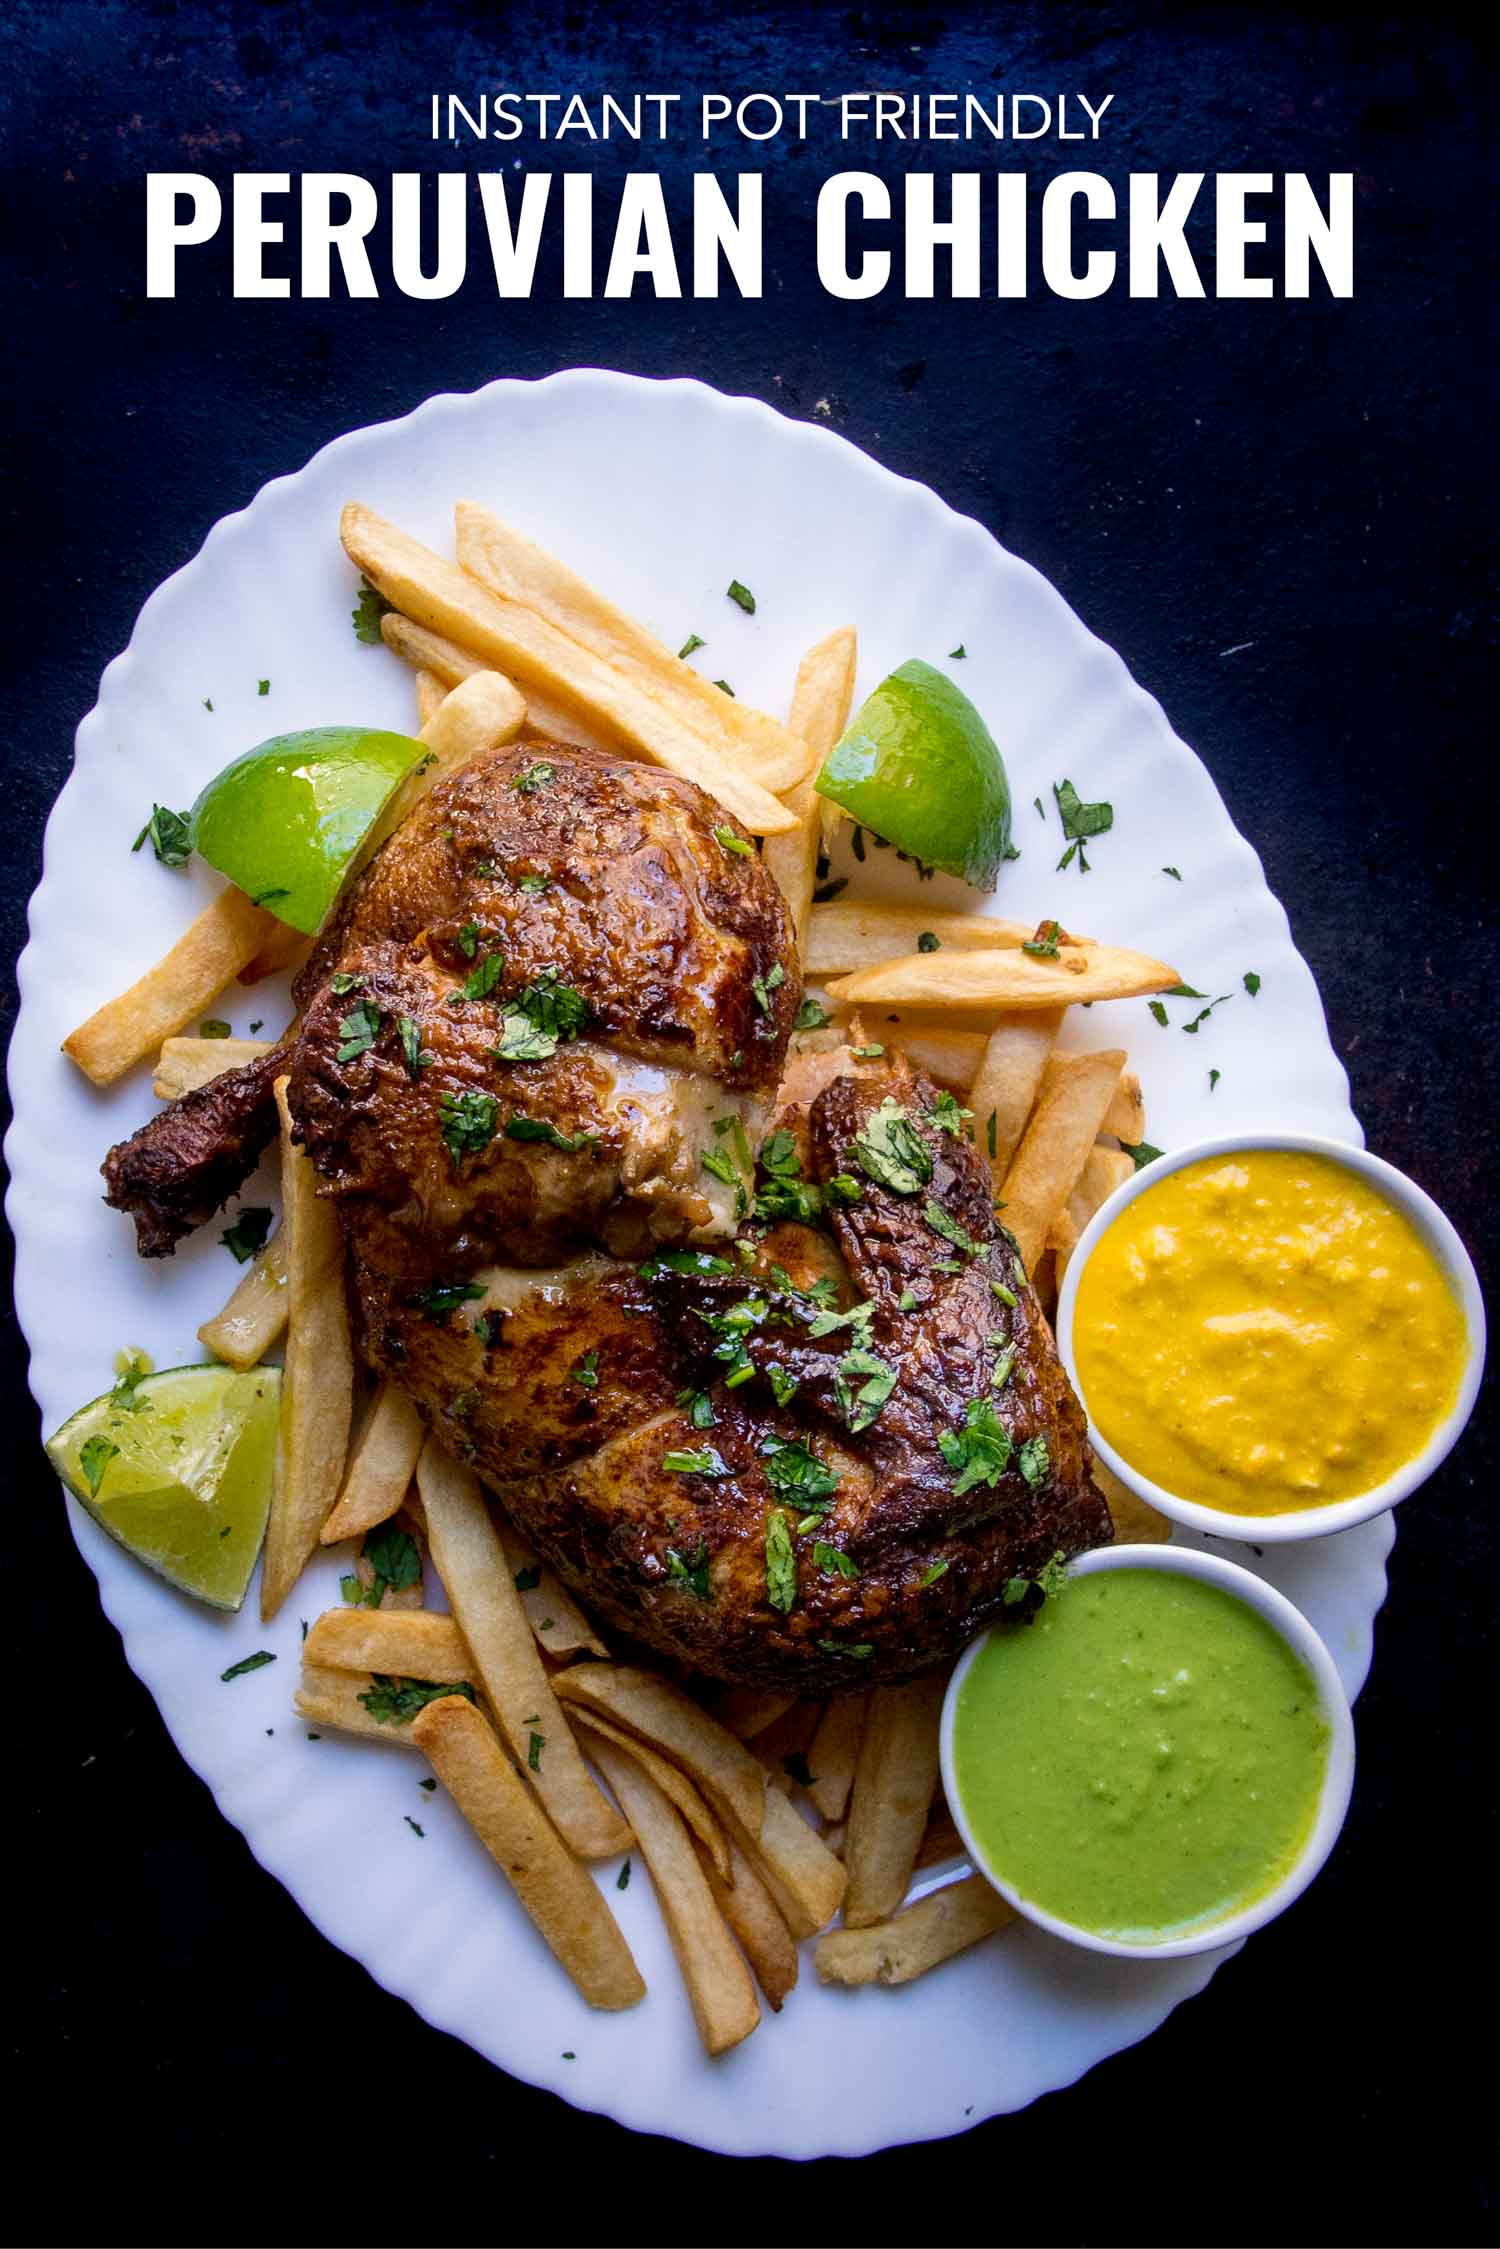 peruvian chicken with french fries and aji sauces on a white plate